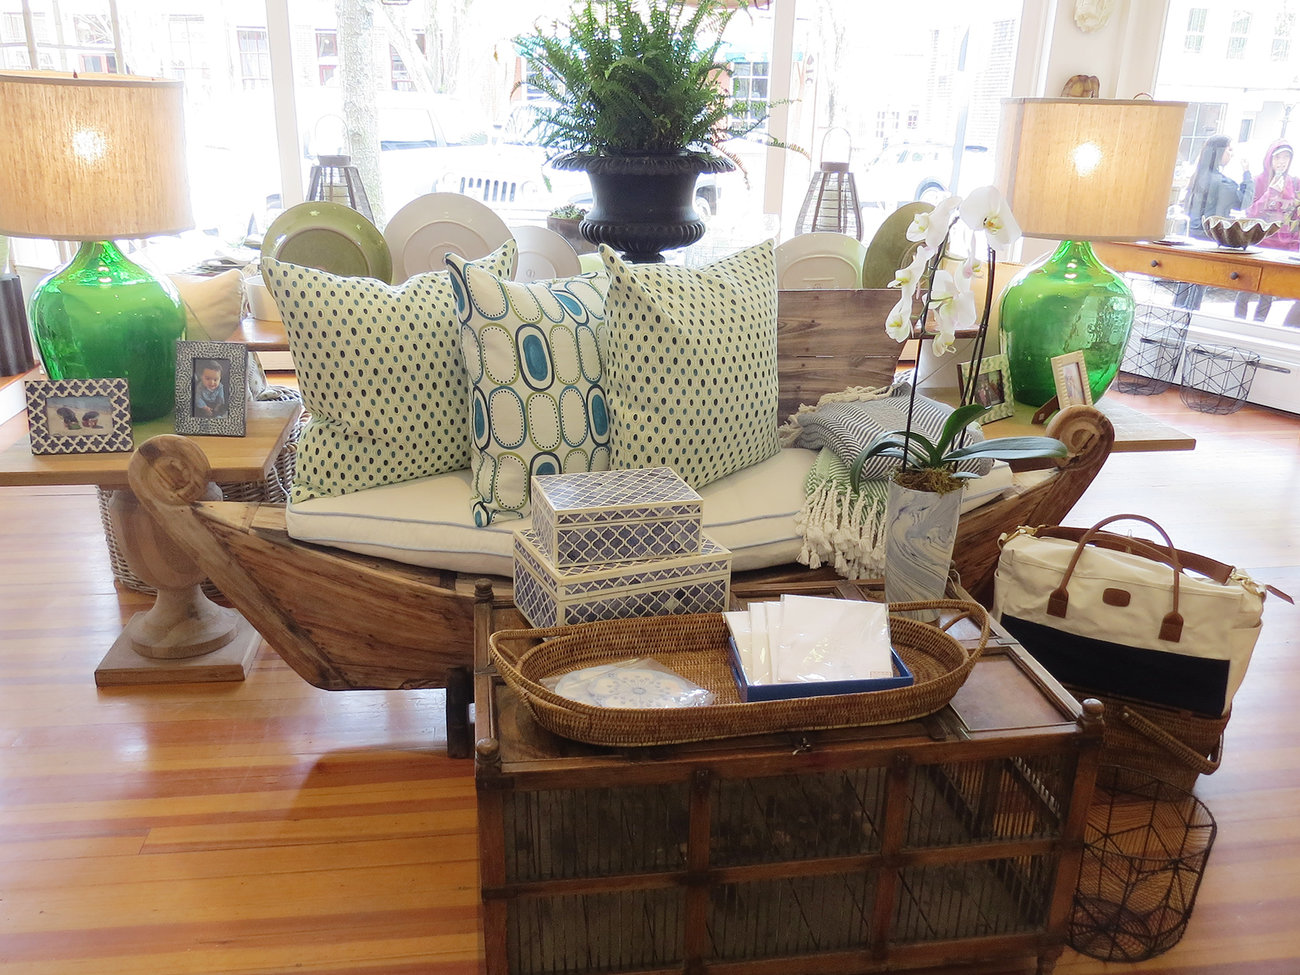 The Lion's Paw Store in Nantucket